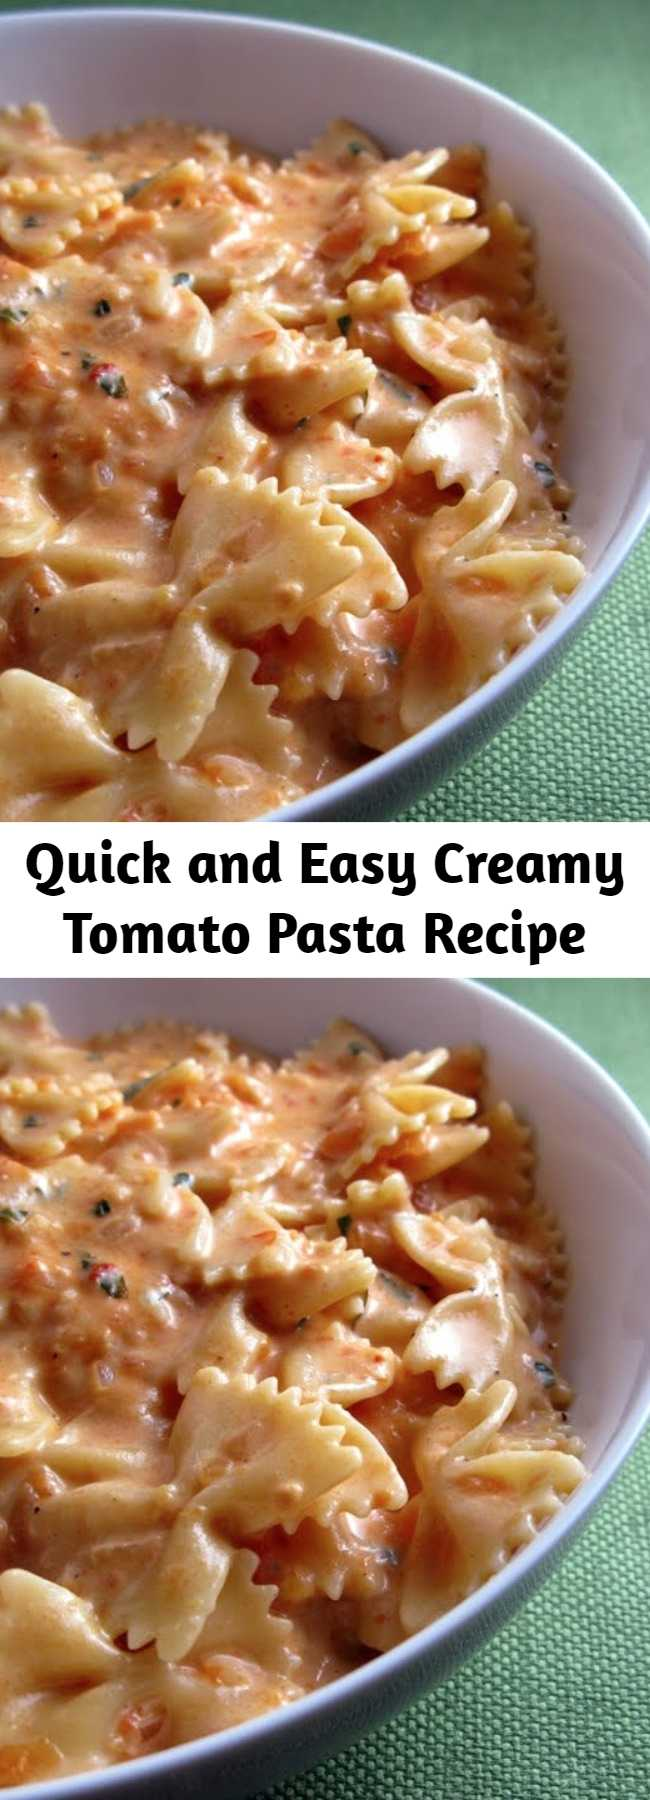 Quick and Easy Creamy Tomato Pasta Recipe - The perfect combination: tomatoes and cream and cheese. It was even better than i expected. Guaranteed you'll fight over who gets seconds, just like we did.